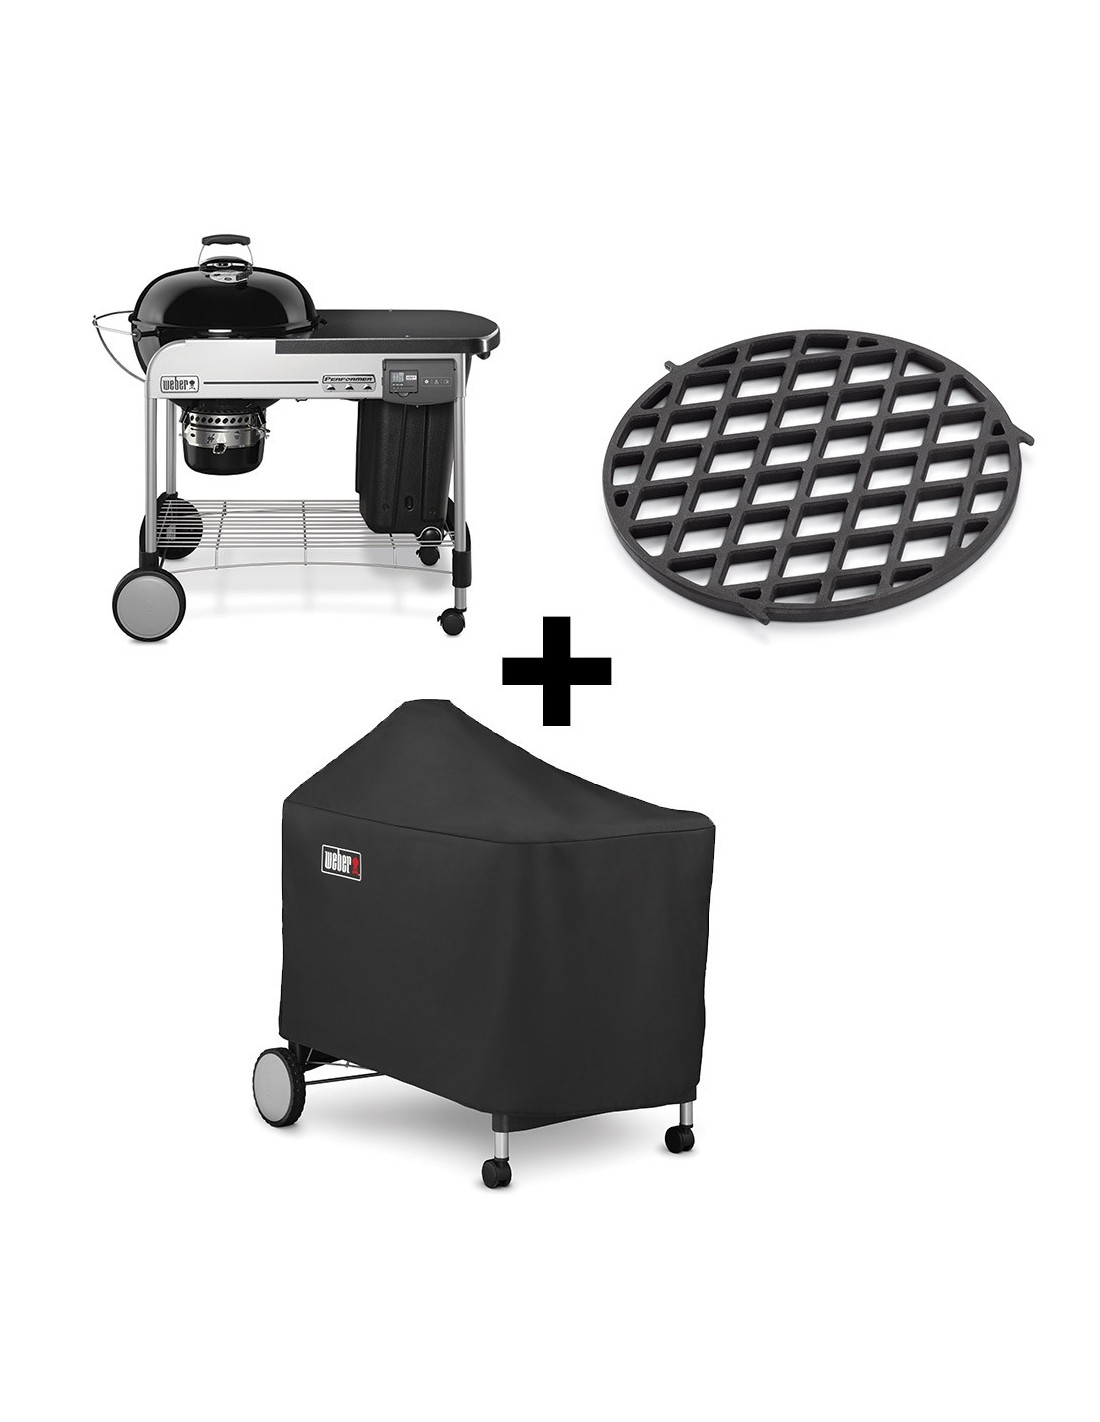 barbecue weber charbon performer deluxe 57cm gbs housse offerte. Black Bedroom Furniture Sets. Home Design Ideas